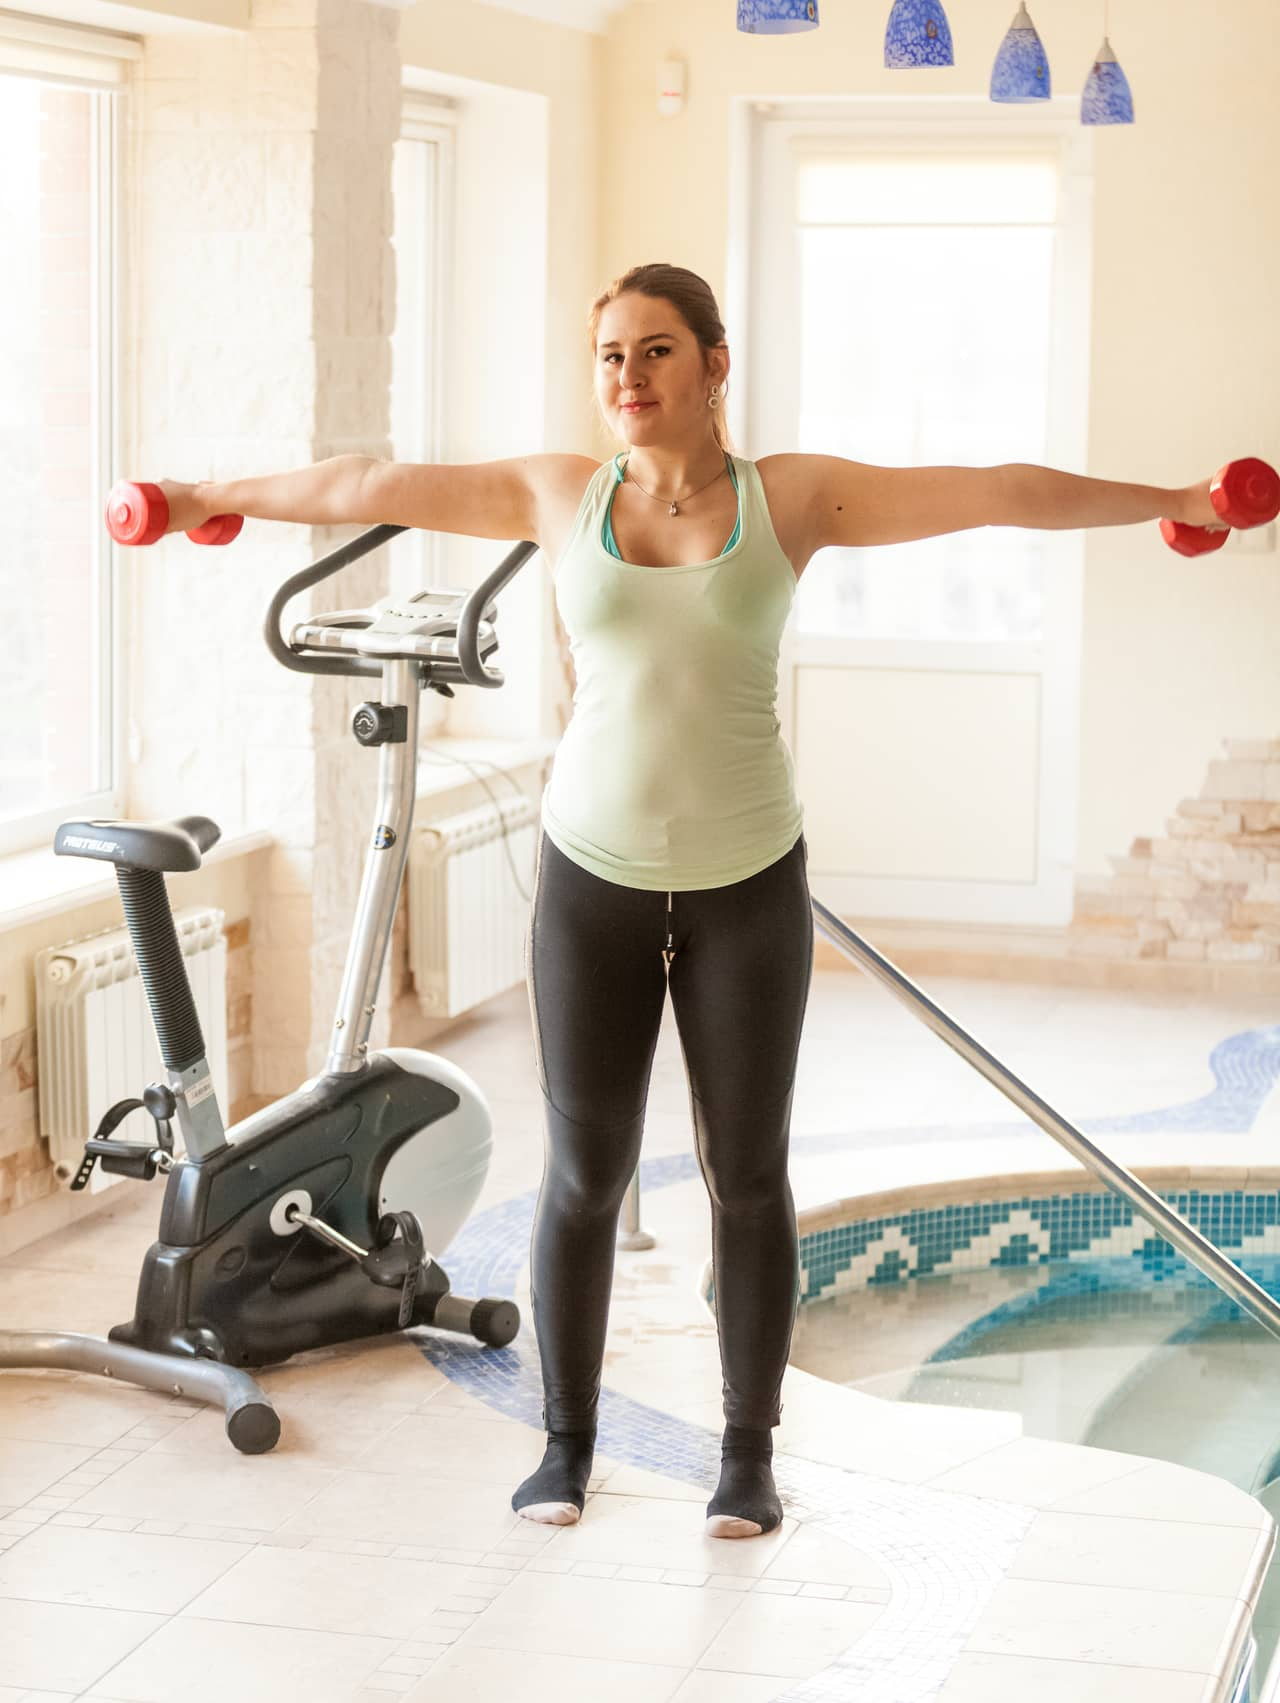 Arm Lifts- Water Based Exercises